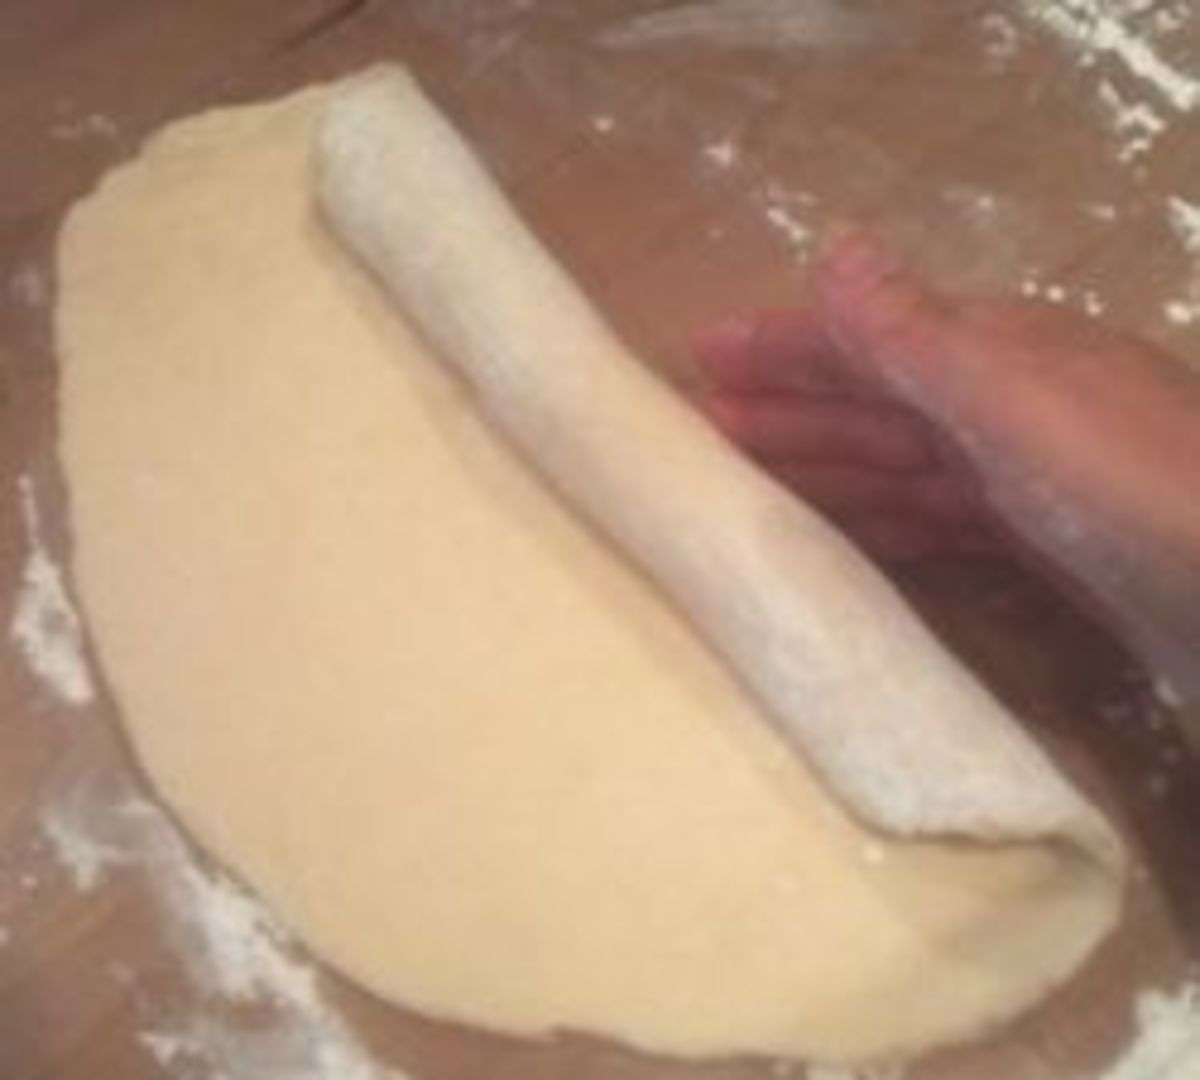 Roll the dough into a cylinder shape.